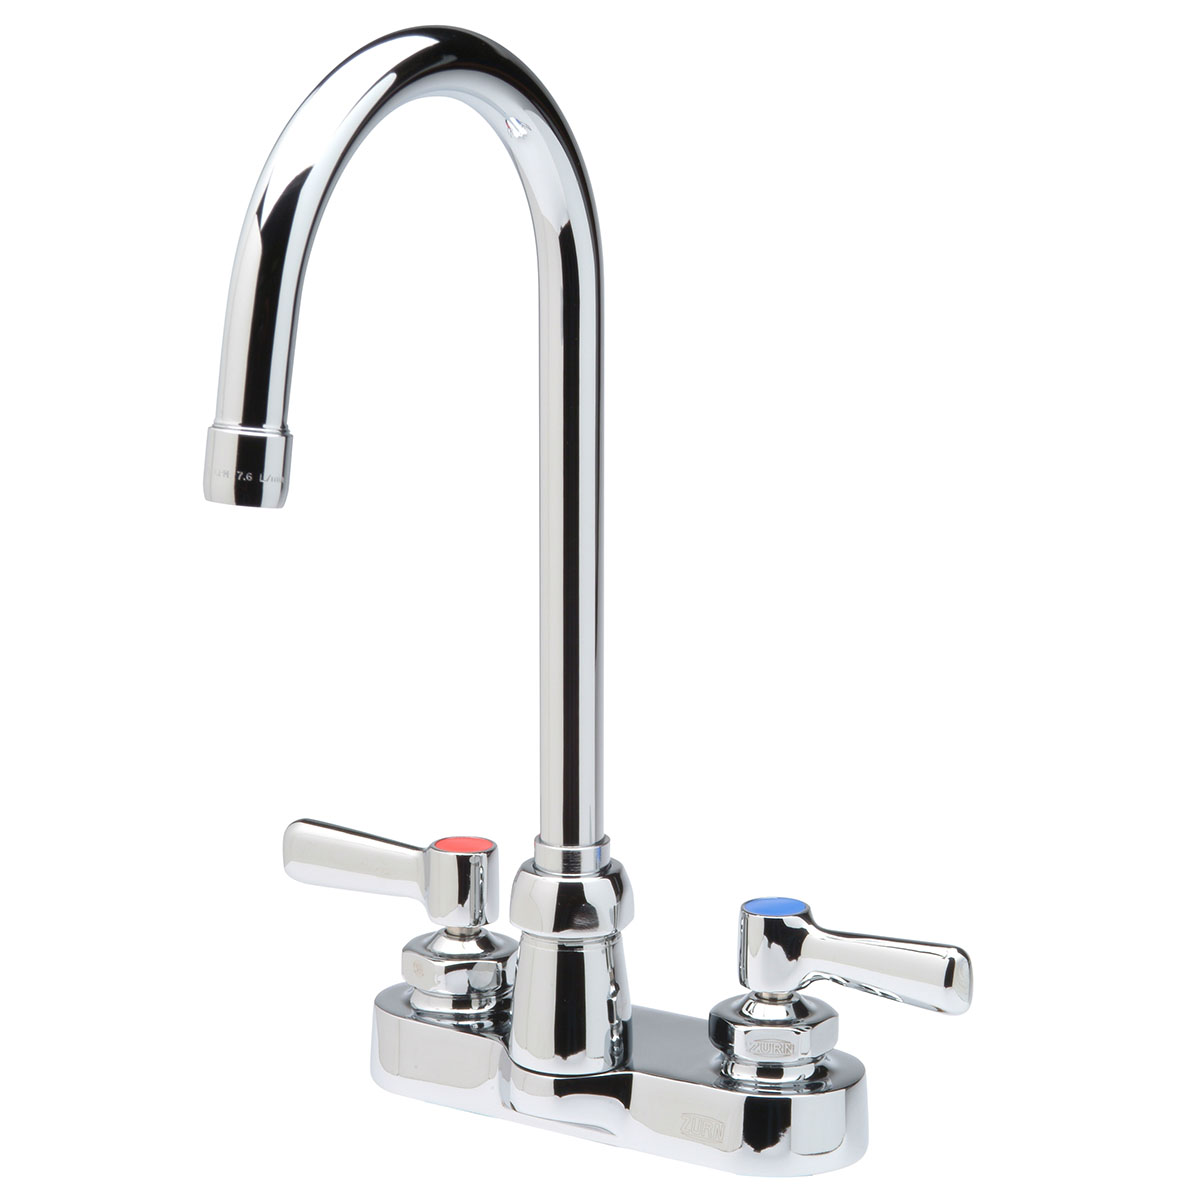 Zurn® AquaSpec® Z812B1-XL Centerset Bathroom Faucet, Polished Chrome, 2.2 gpm